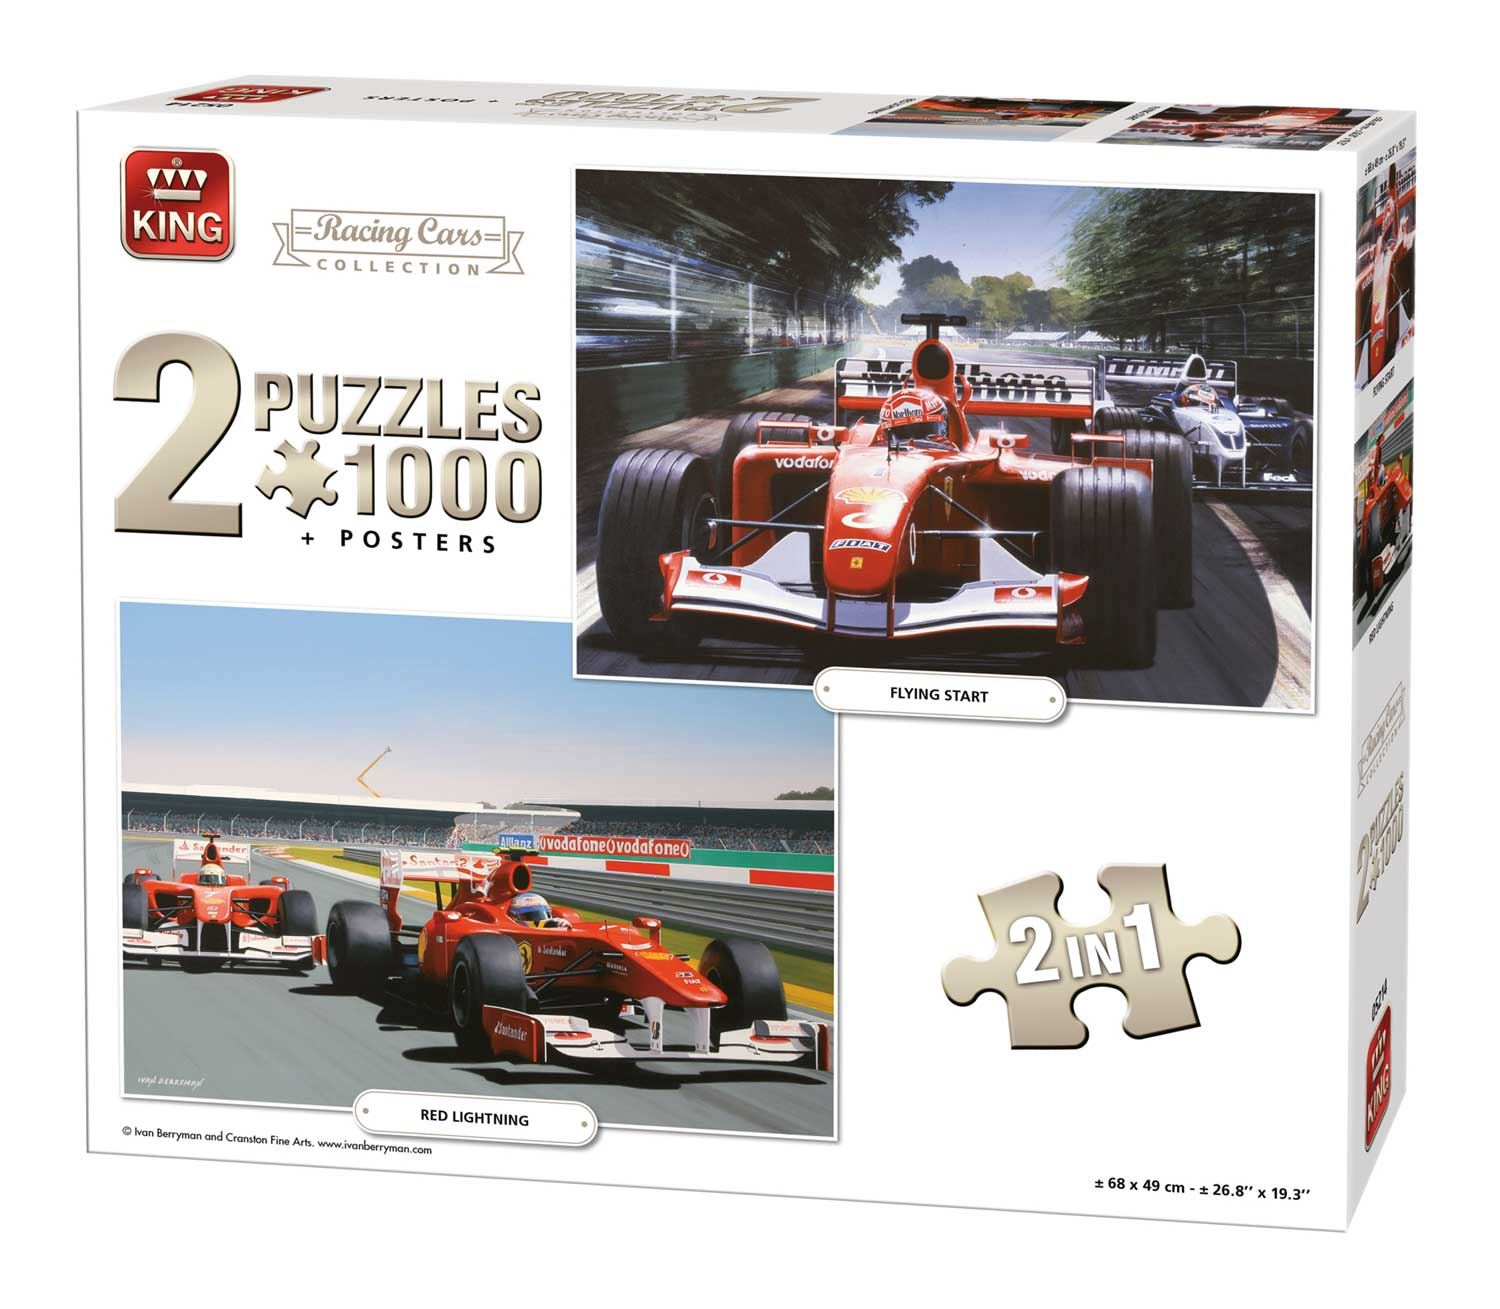 King 2 In 1 Racing Cars Collection Jigsaw Puzzle (1000 Pieces)